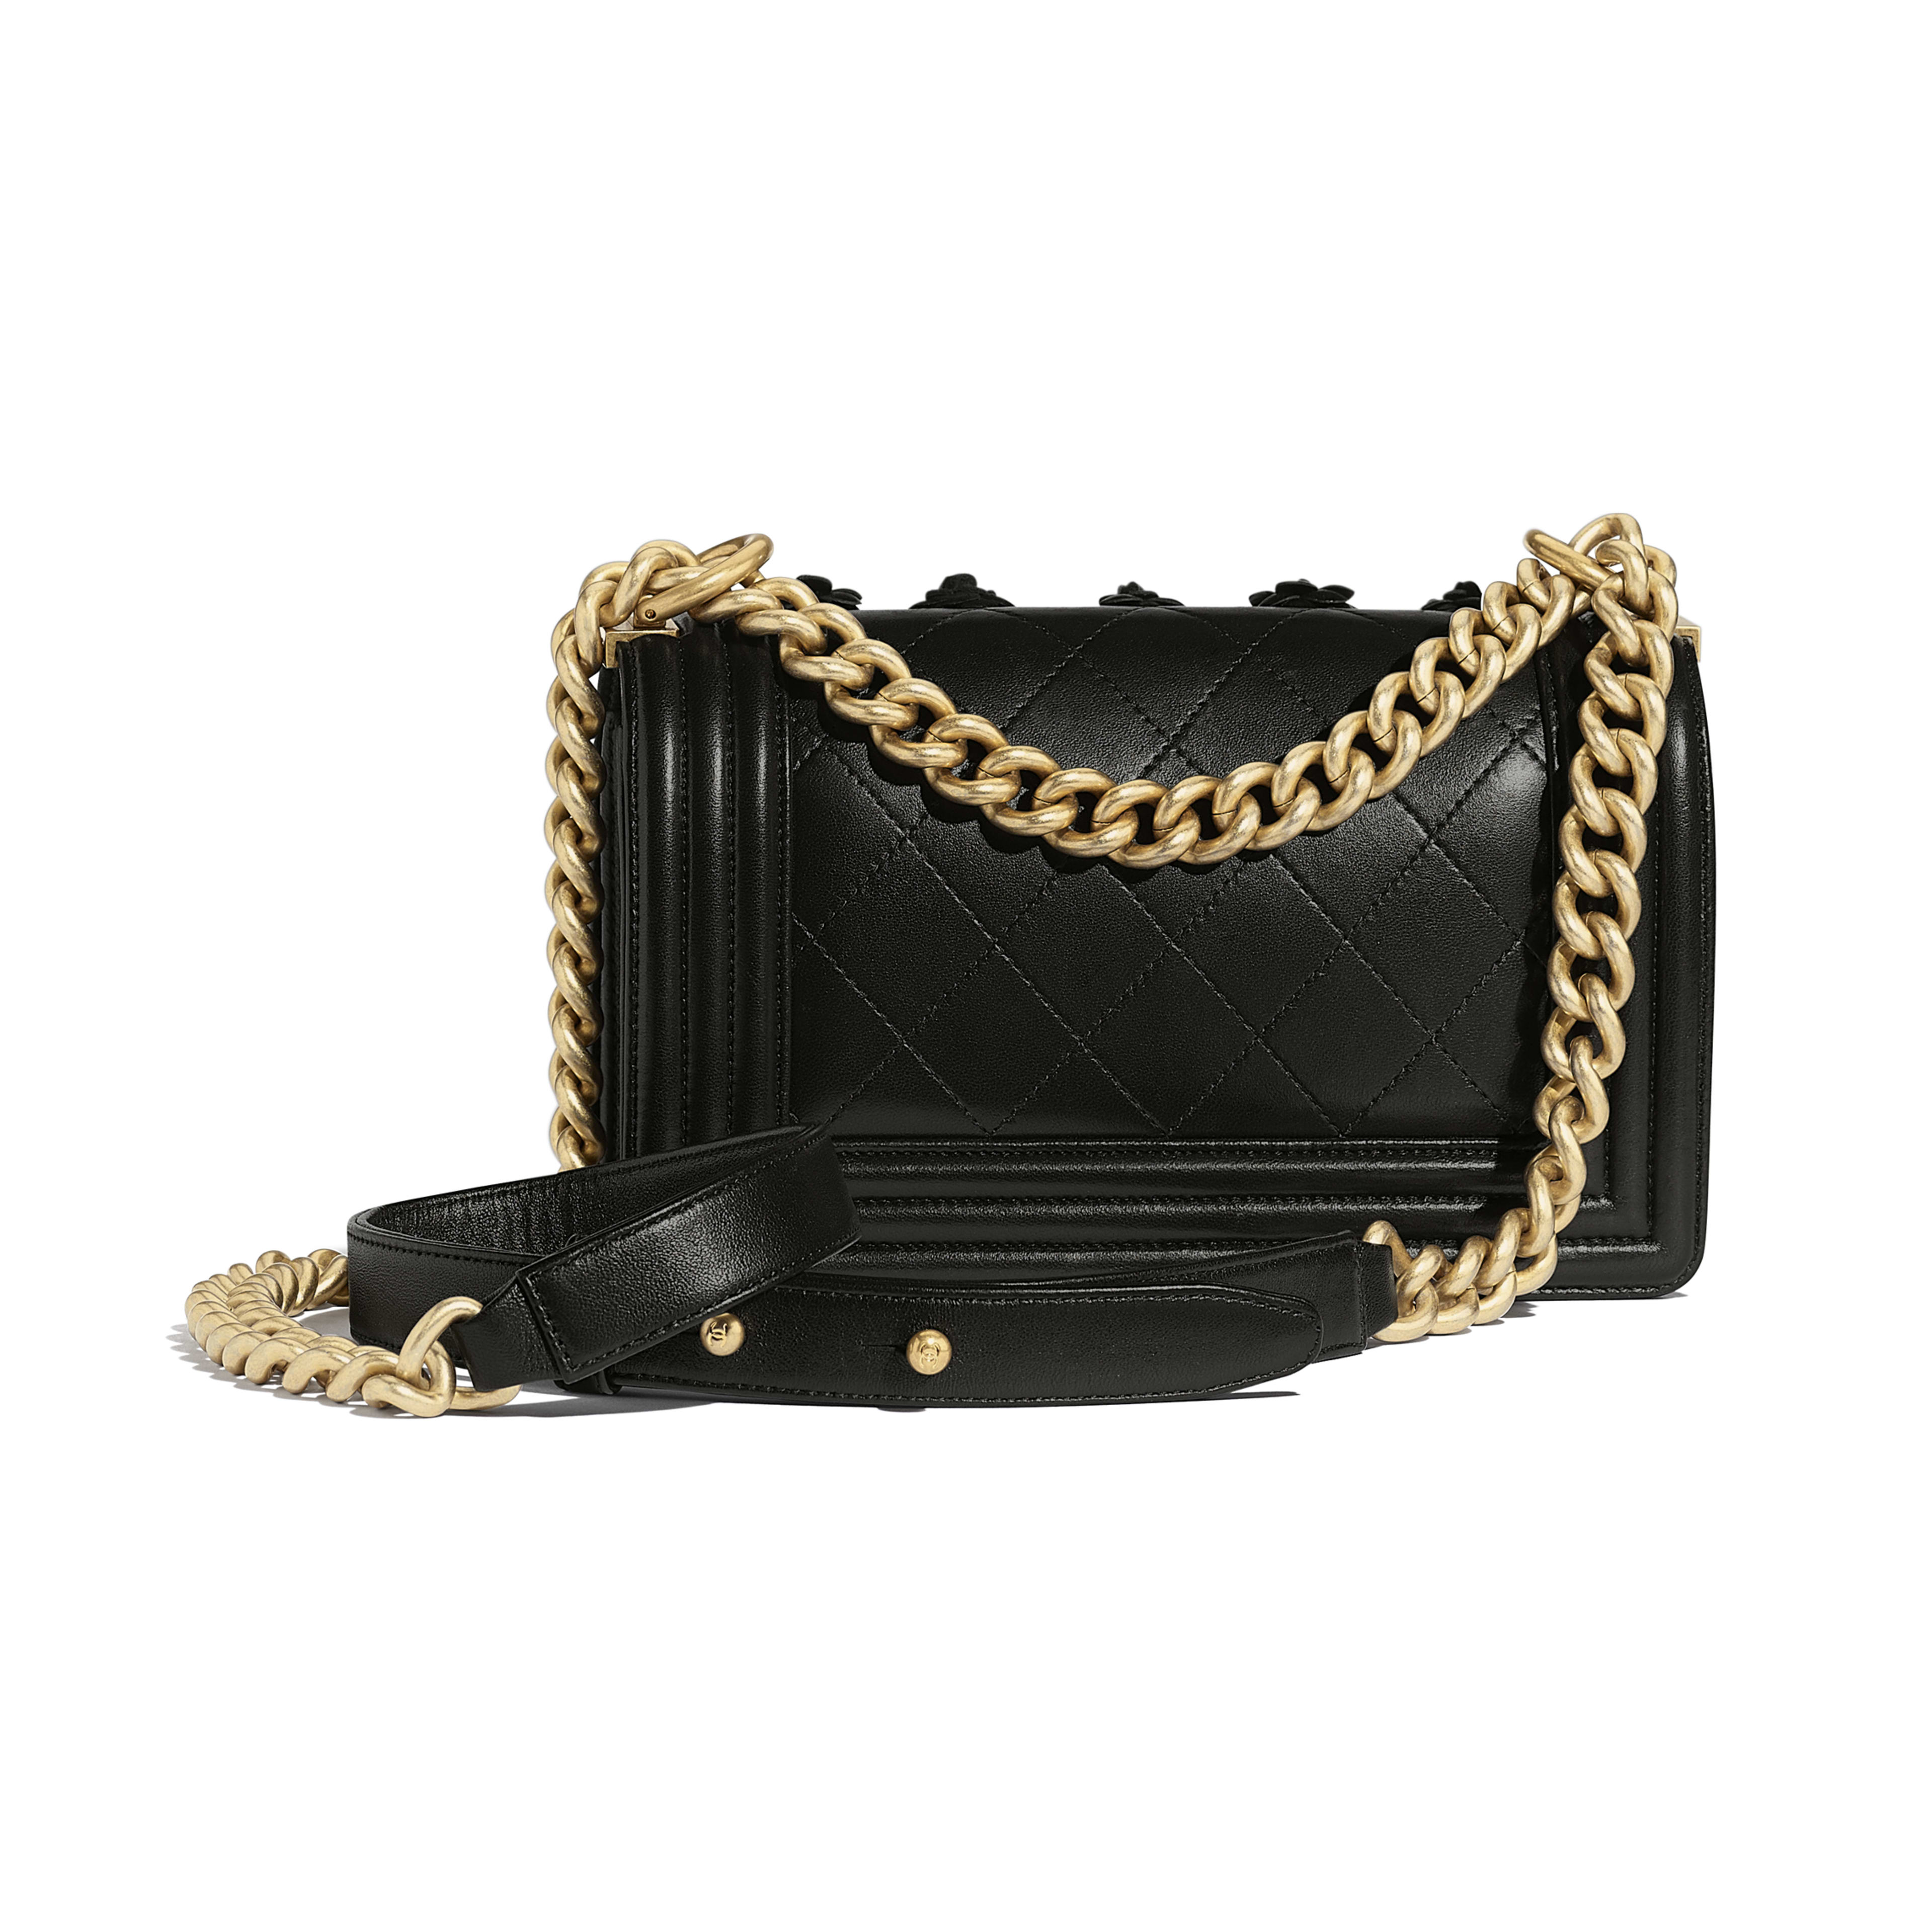 Small BOY CHANEL Handbag - Black - Embroidered Lambskin & Gold-Tone Metal - Alternative view - see full sized version